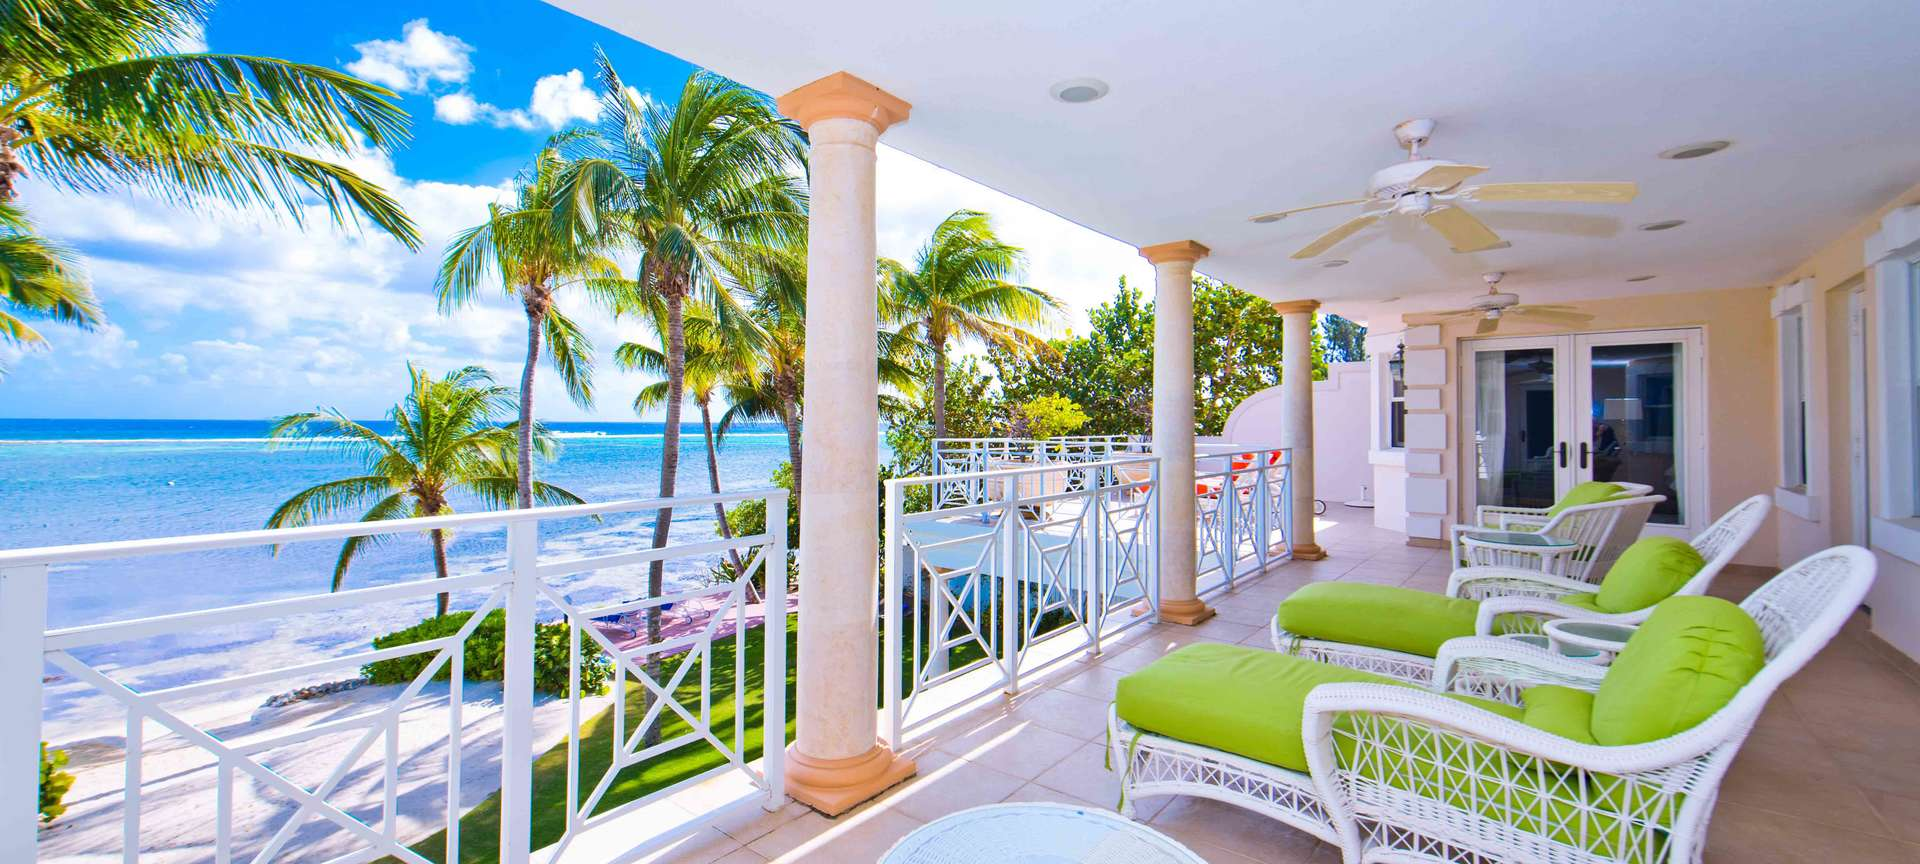 Luxury villa rentals caribbean - Cayman islands - Grand cayman - South sound - Tatenda - Image 1/21